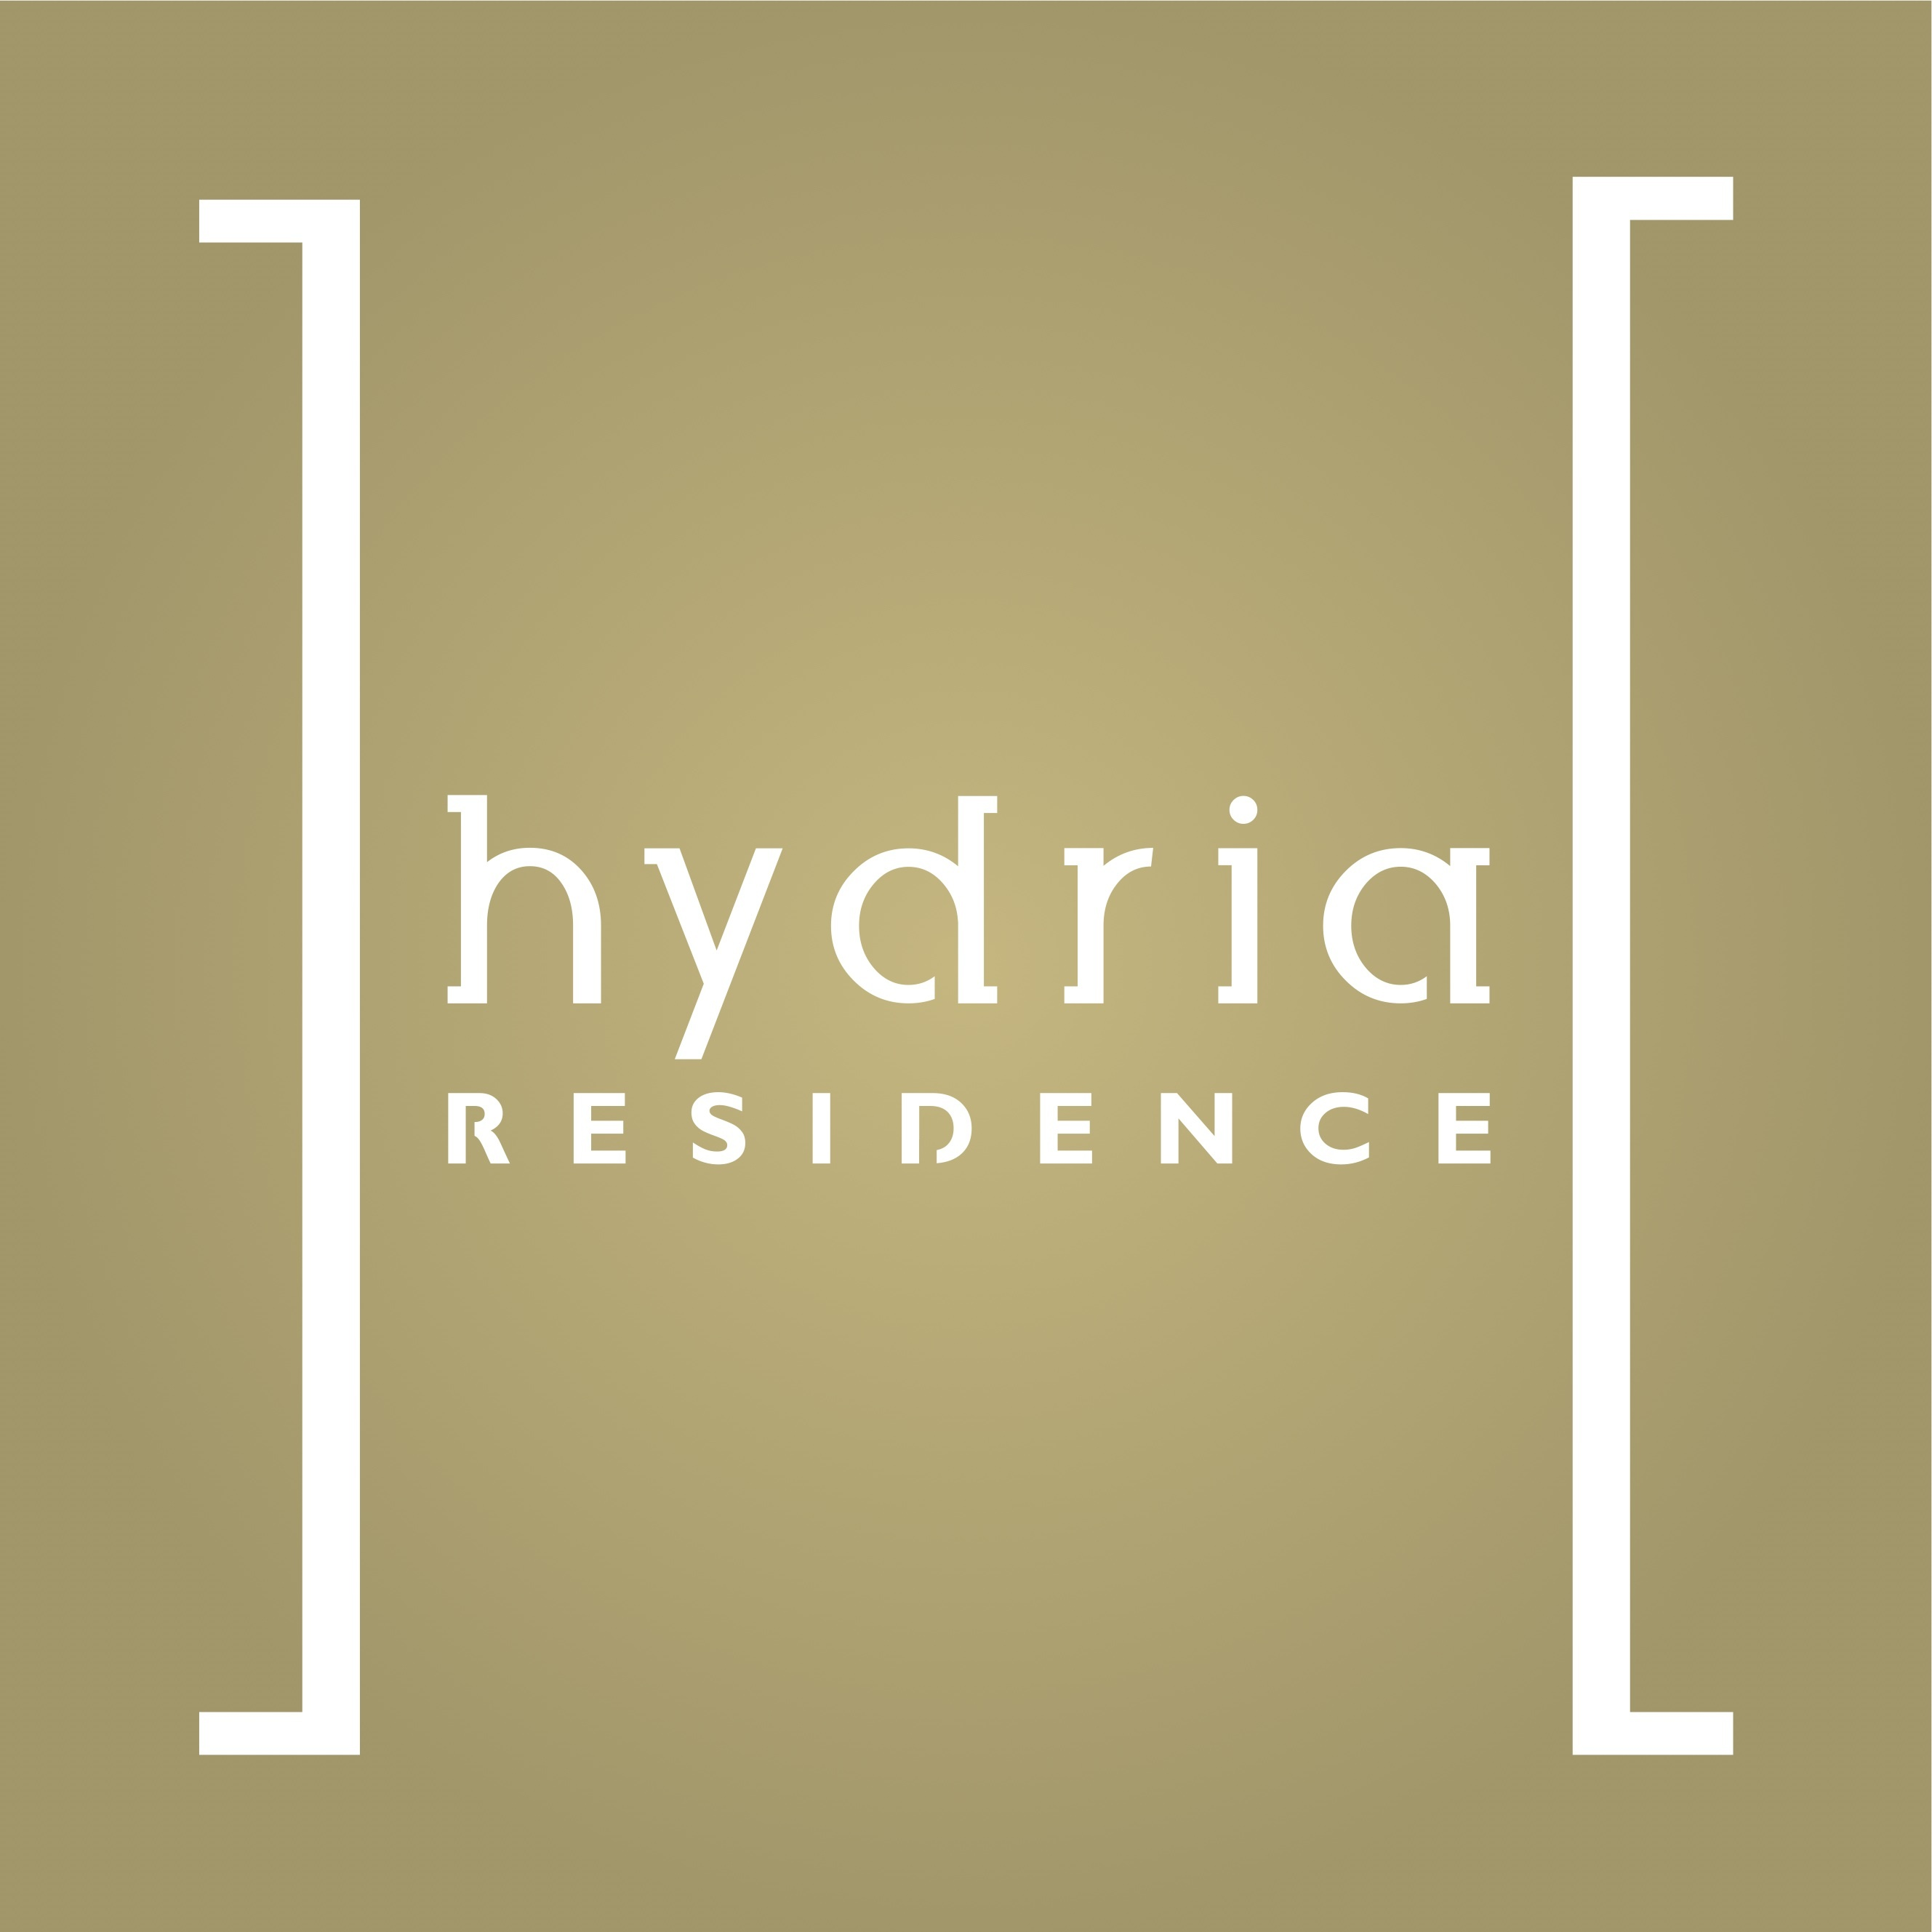 Hydria Residence